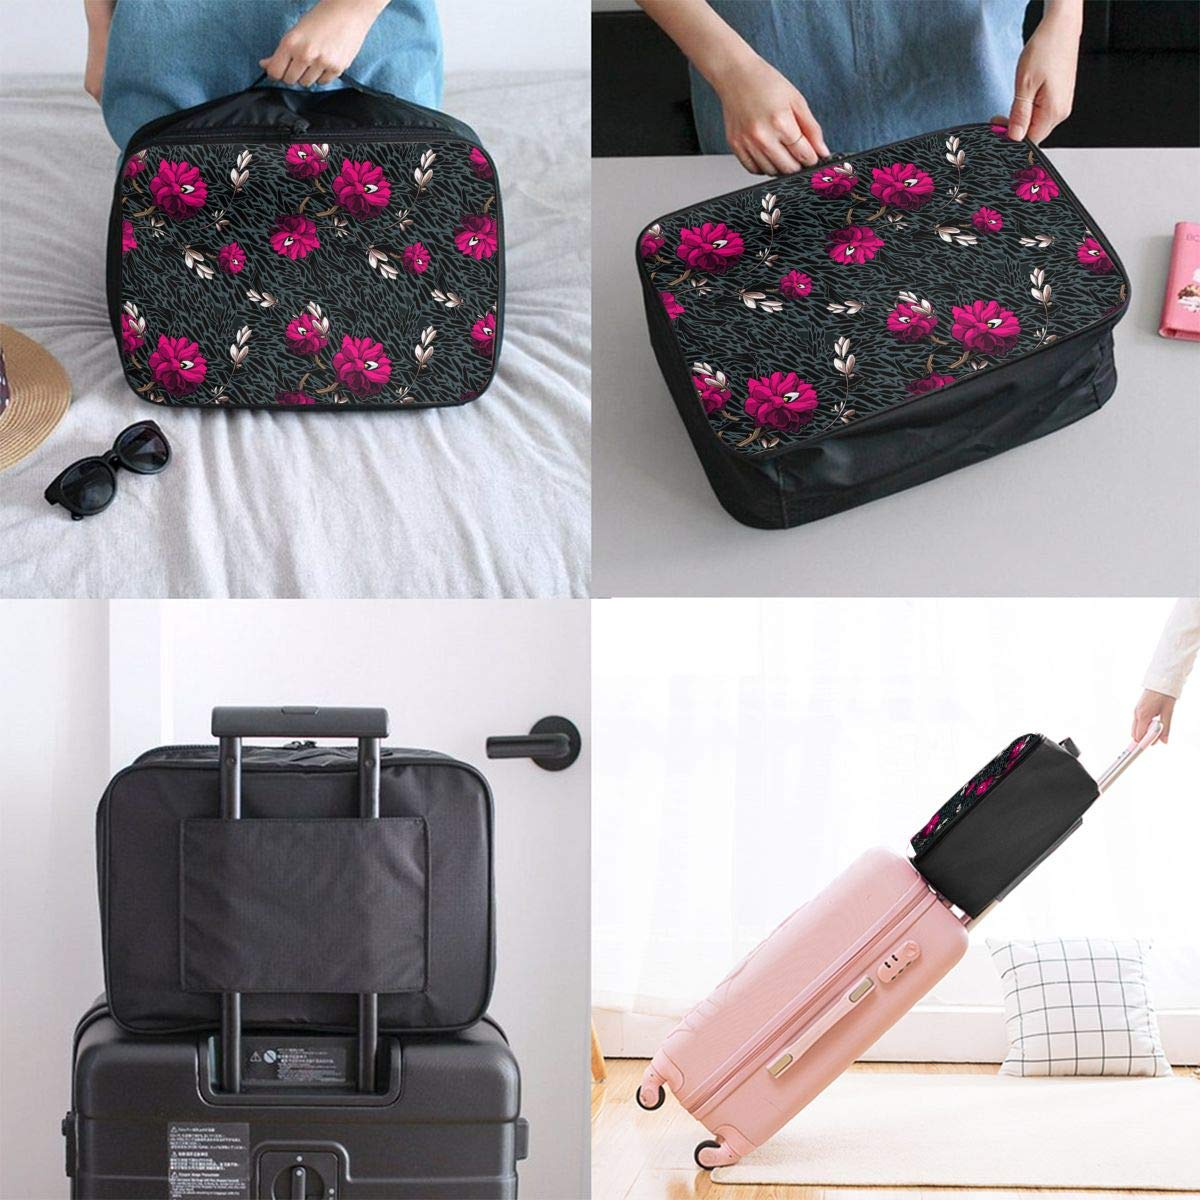 Travel Luggage Duffle Bag Lightweight Portable Handbag Red Flowers Pattern Large Capacity Waterproof Foldable Storage Tote